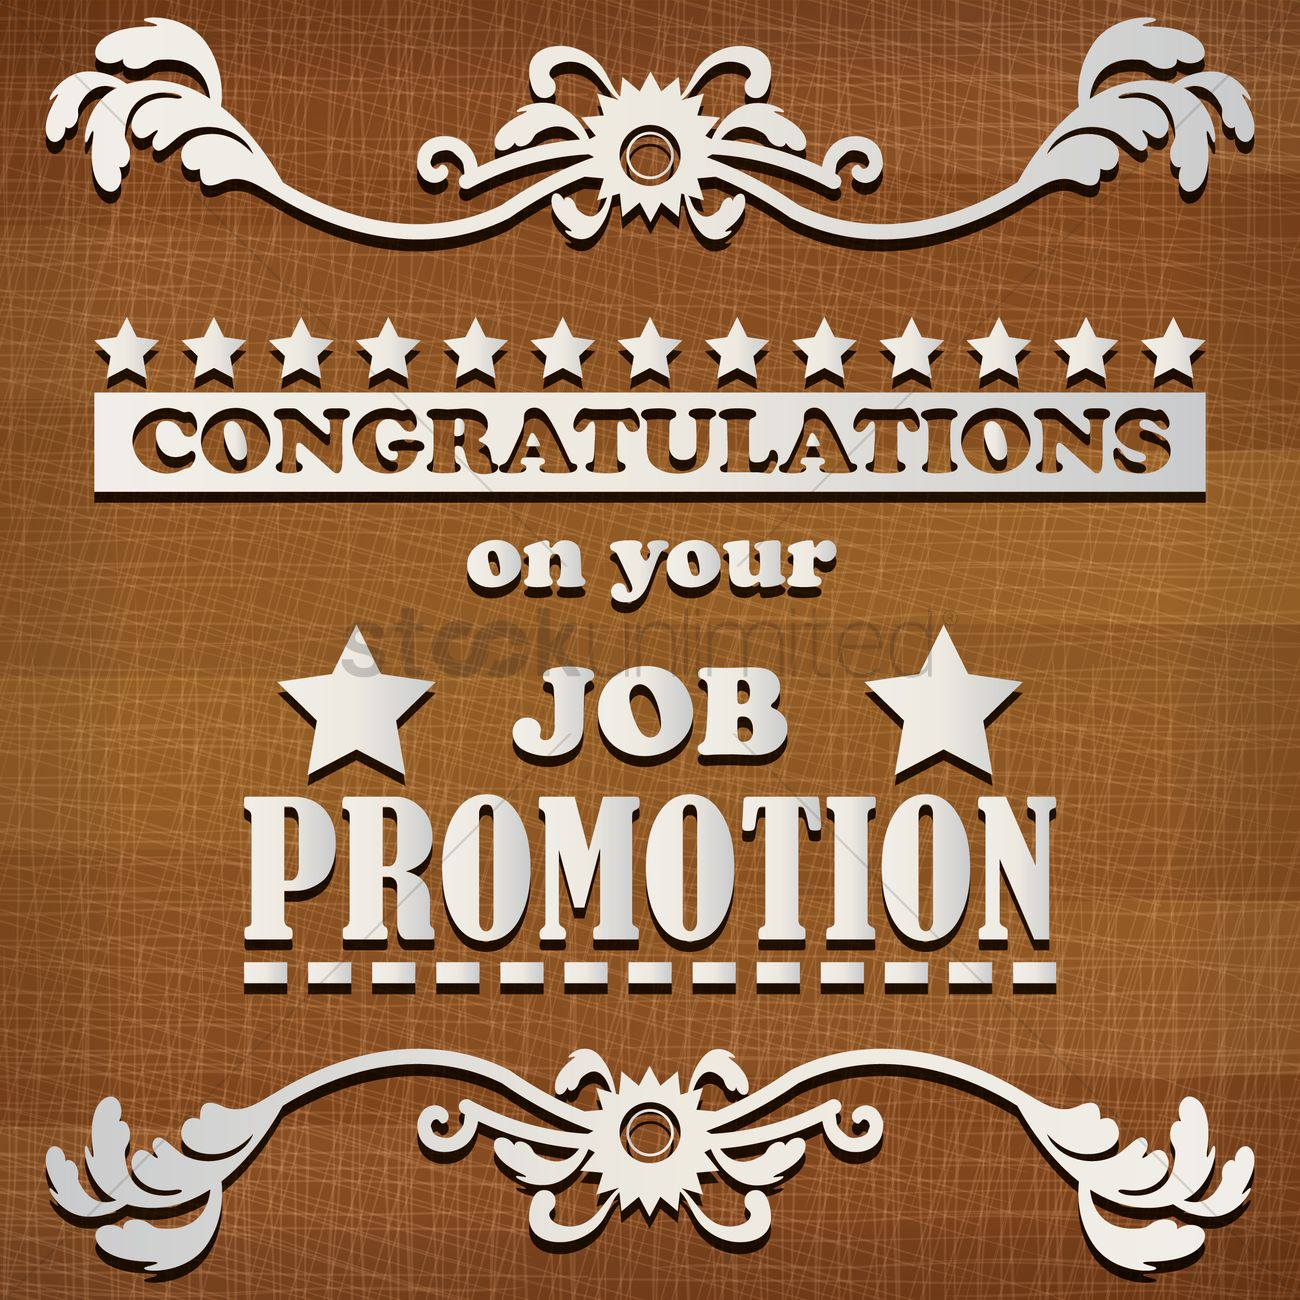 Congratulations on your job promotion vector image 1828447 congratulations on your job promotion vector graphic m4hsunfo